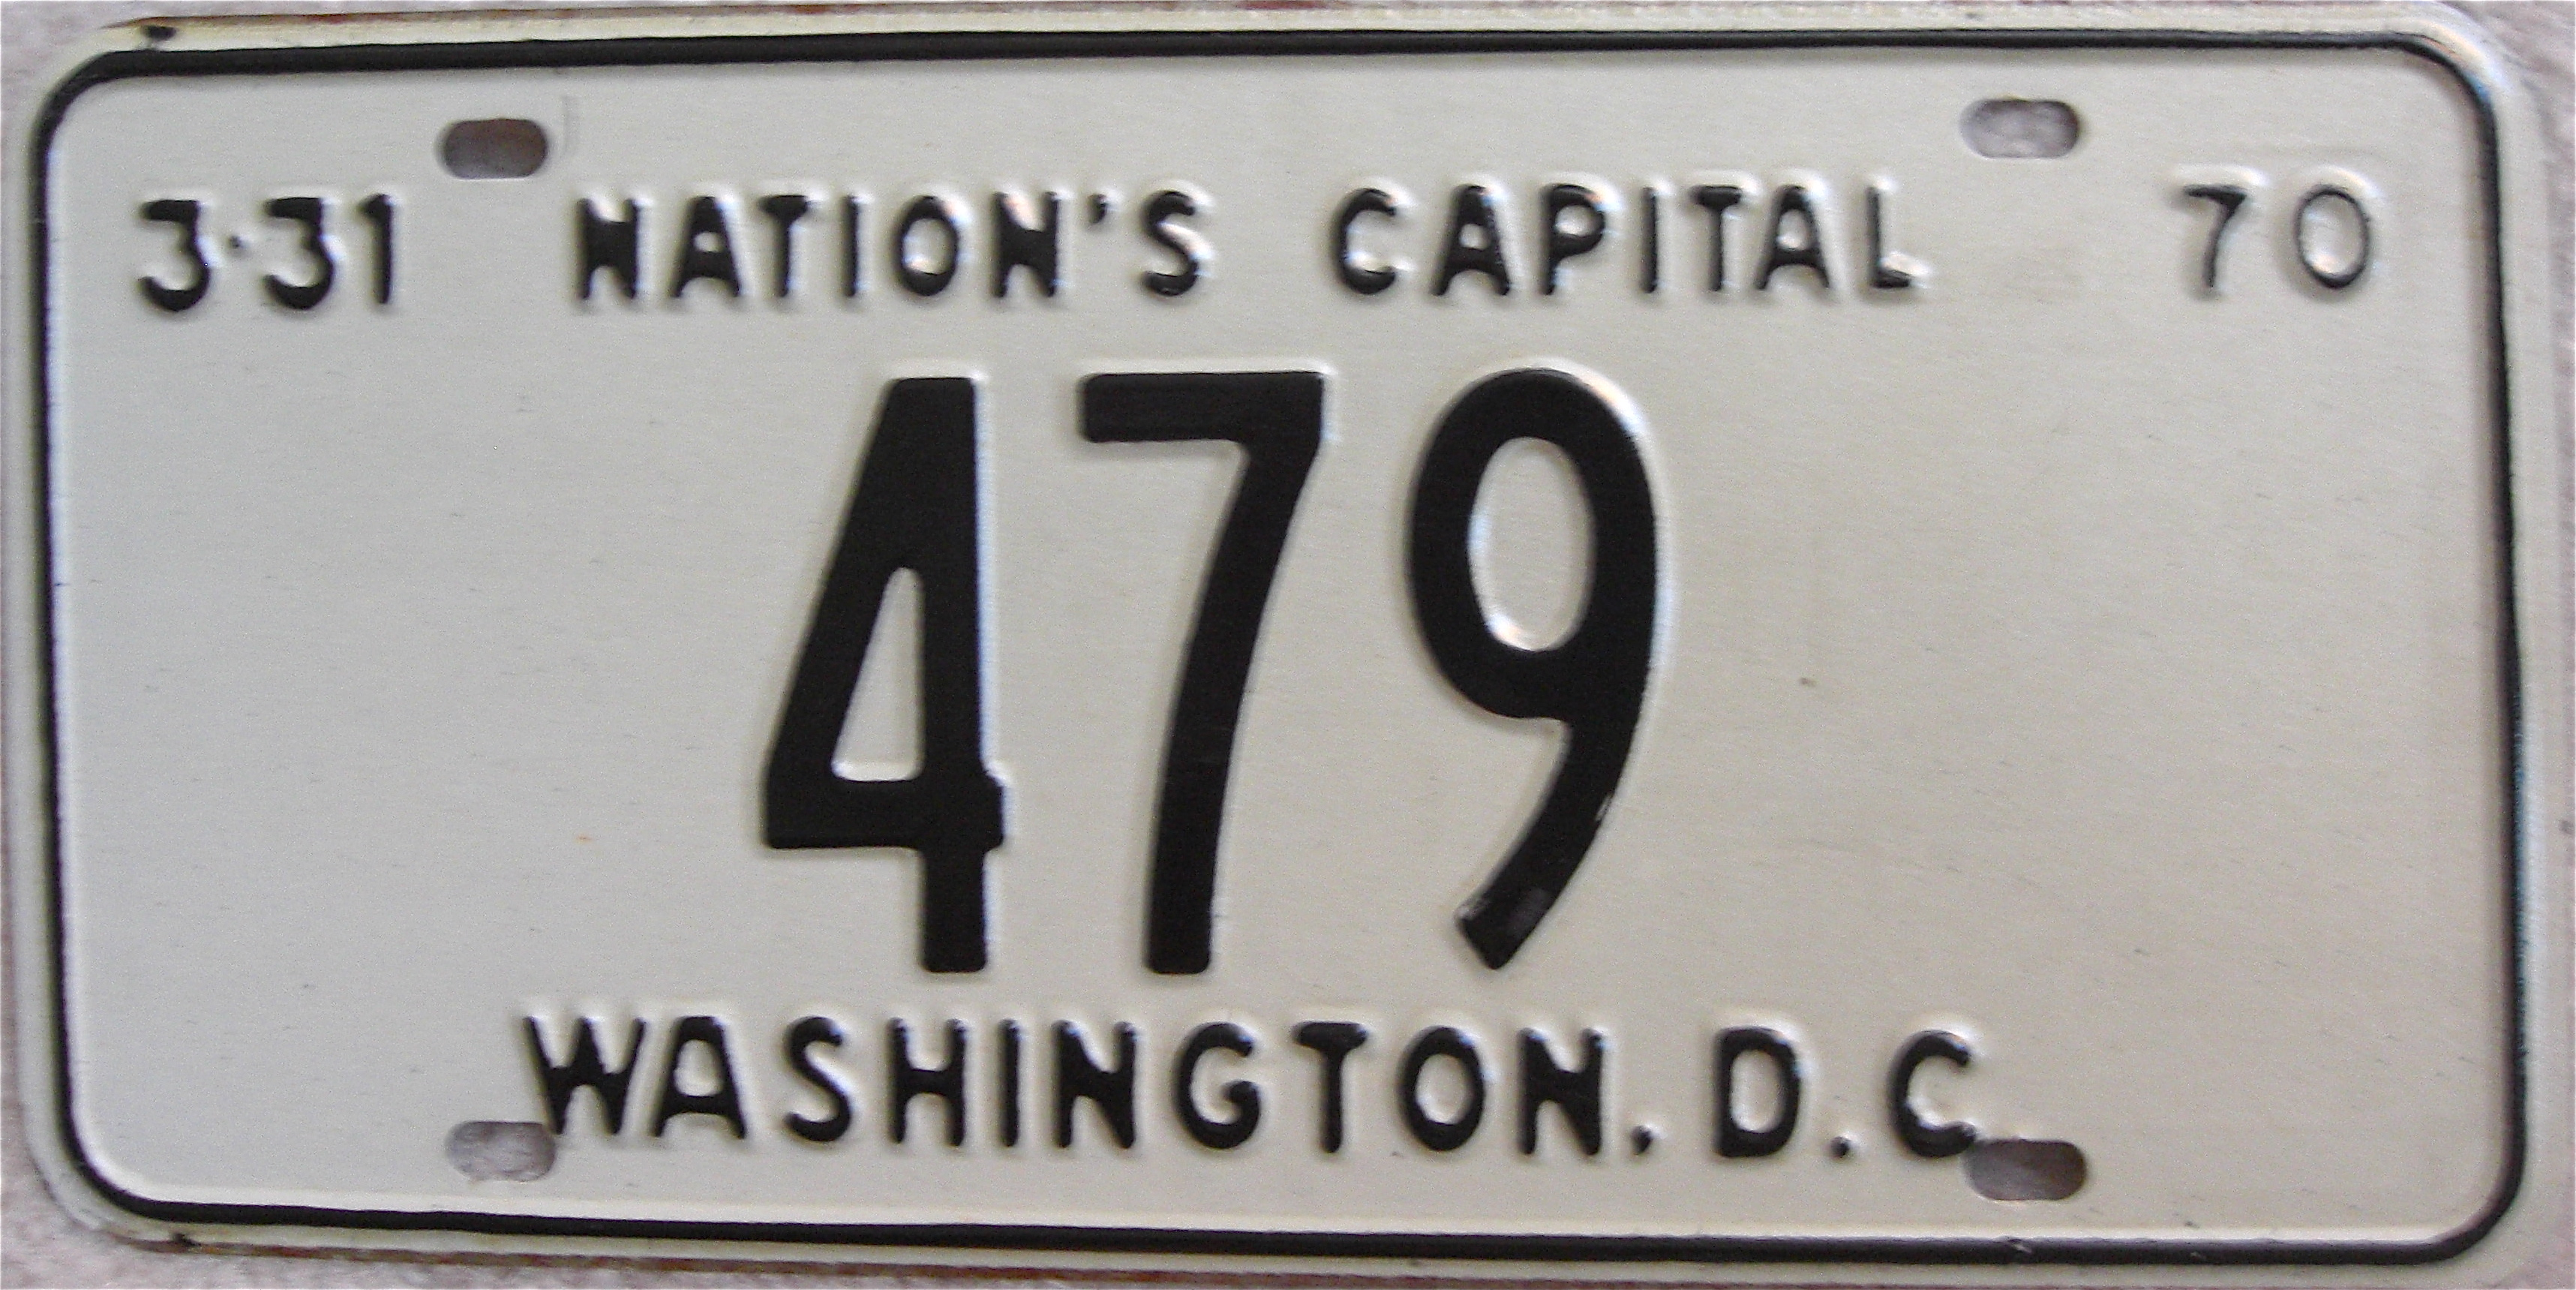 File:1970 Washington, D.C. low number license plate.jpg - Wikimedia ...